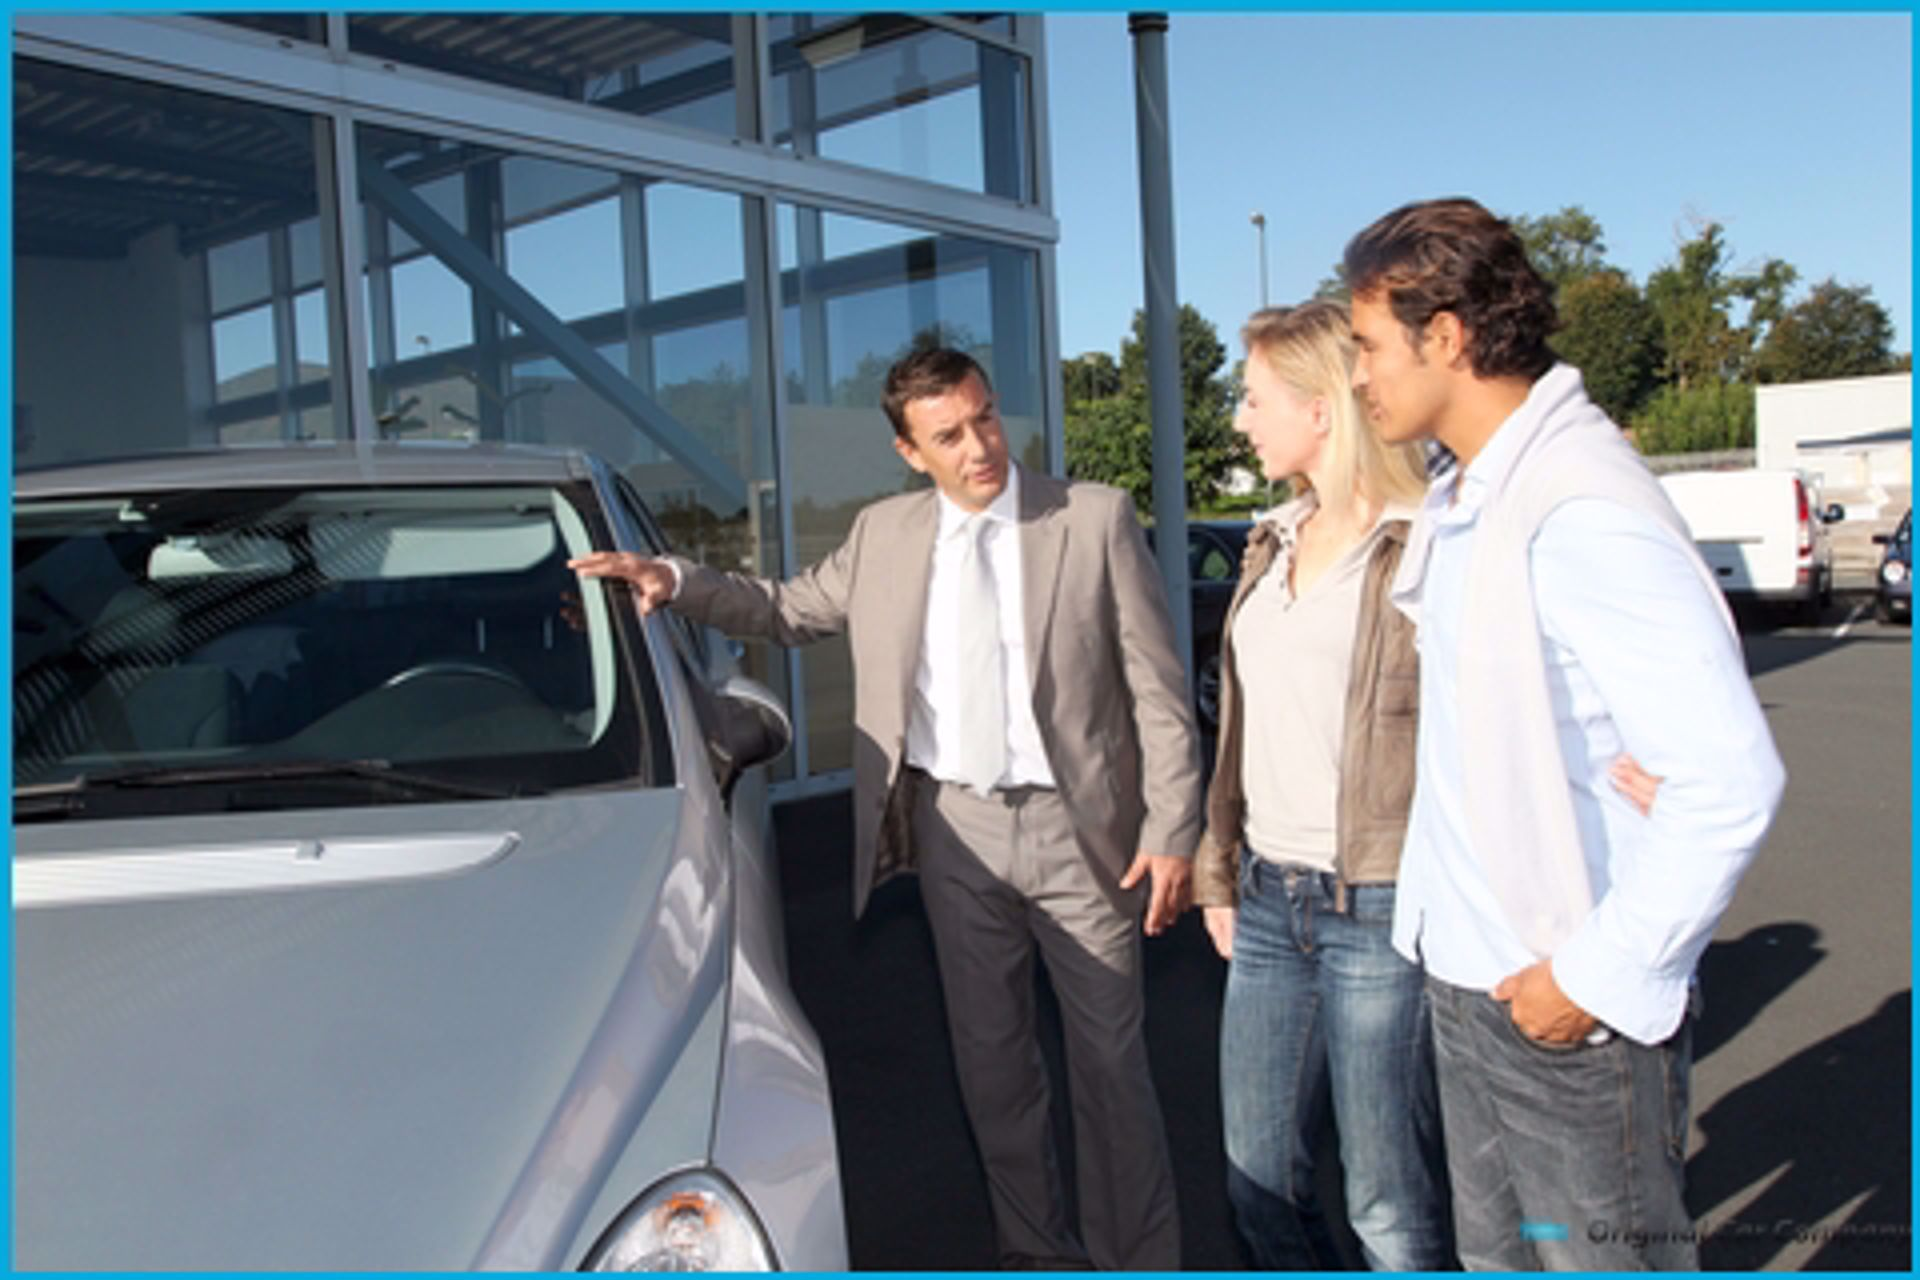 The Advantages and Disadvantages of Trading in a Used Car